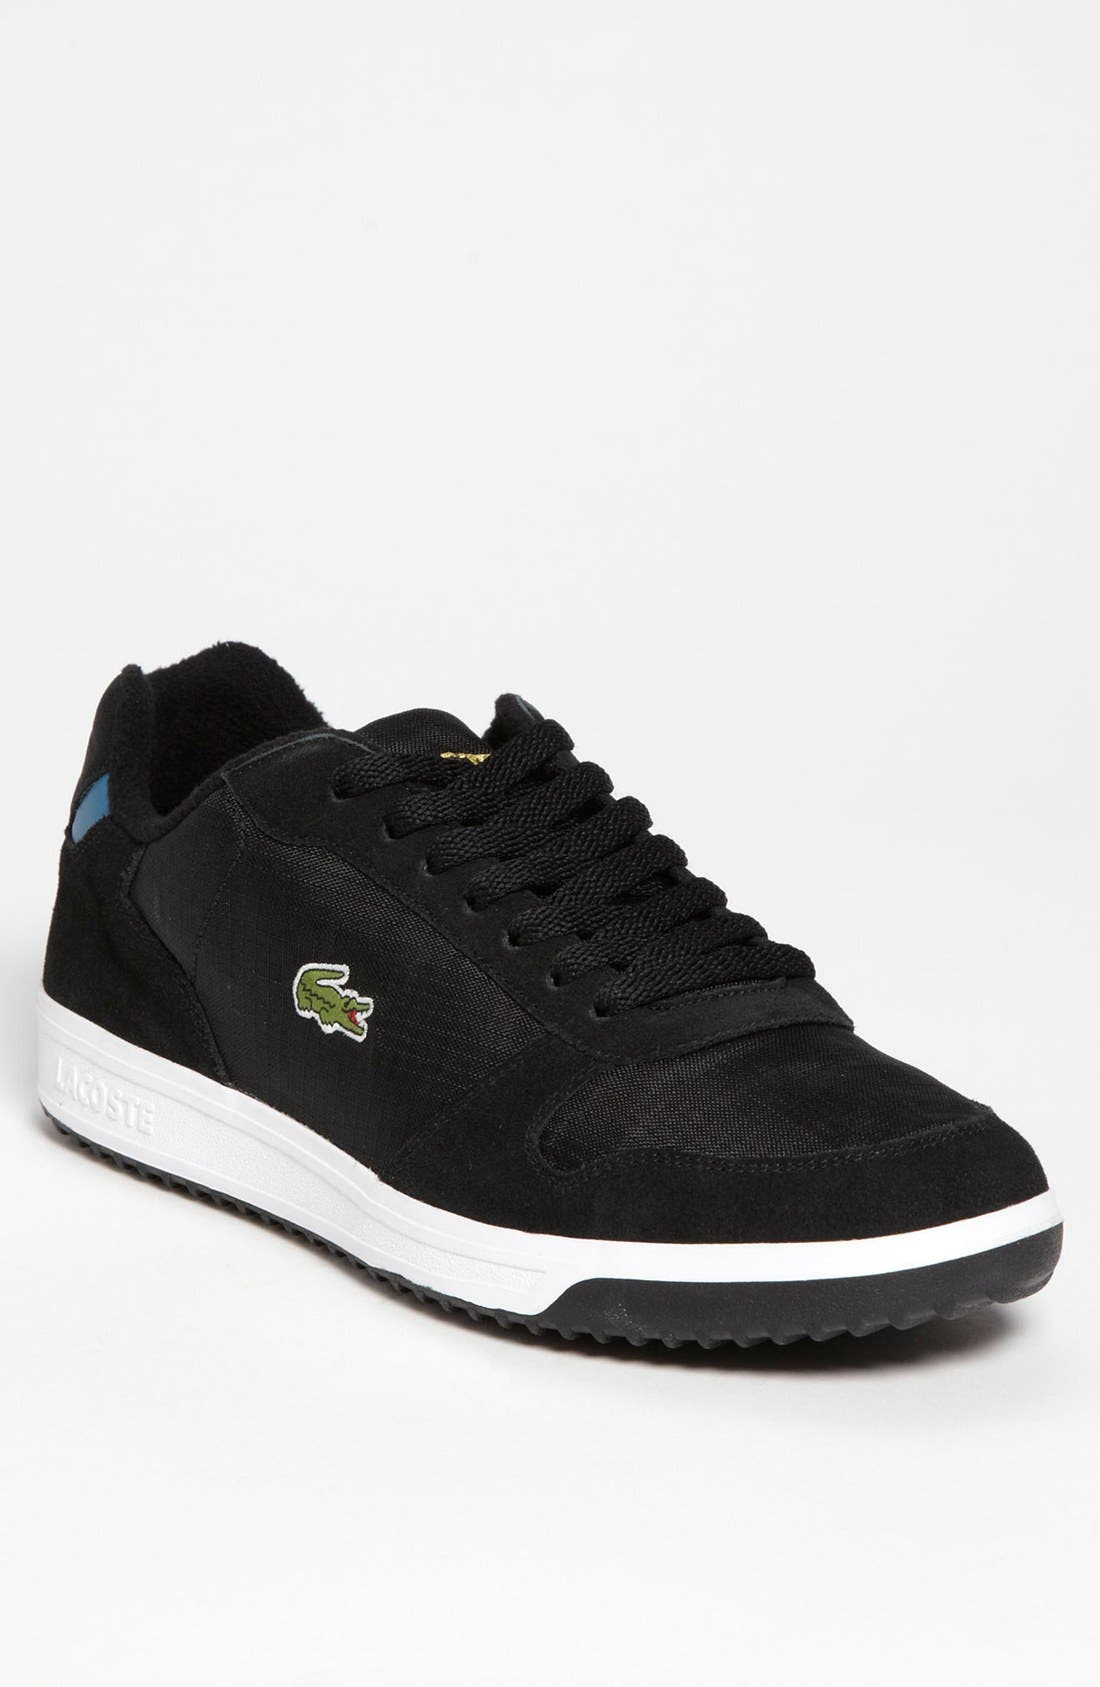 Alternate Image 1 Selected - Lacoste 'Jenson' Sneaker